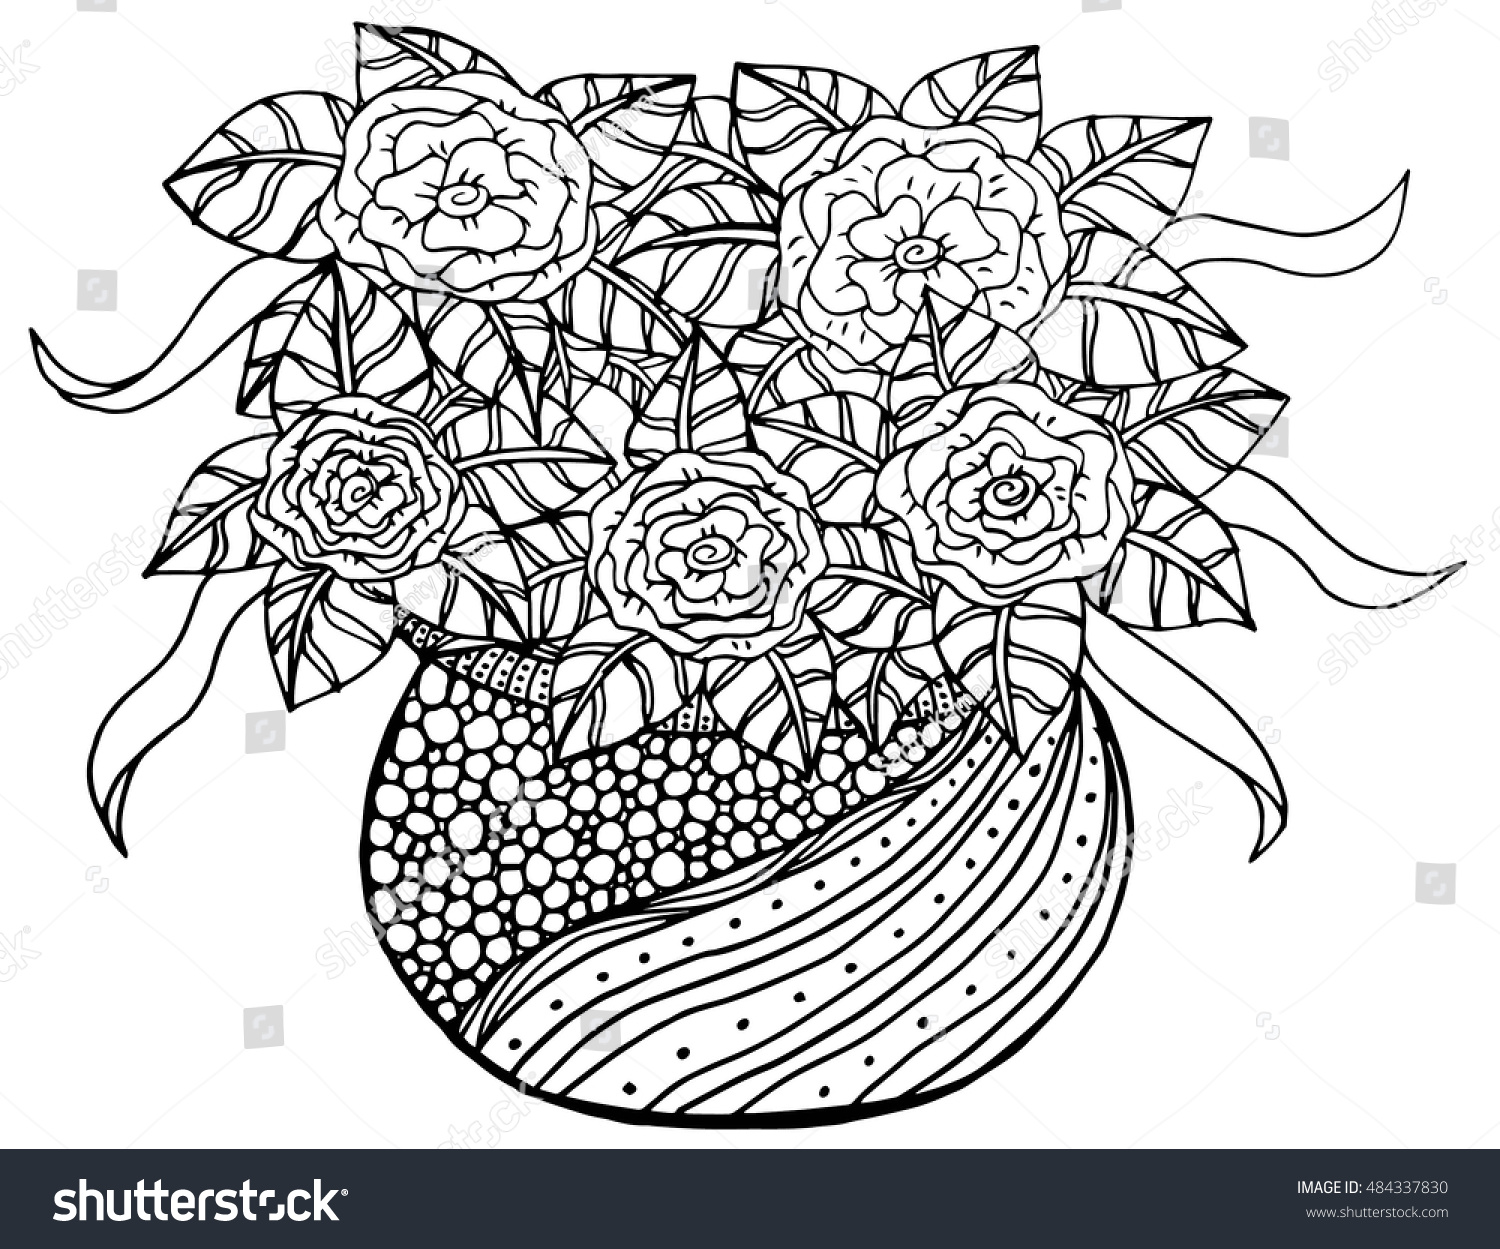 Vector Doodle Floral Illustrated Bouquet Flowers Stock Photo (Photo ...